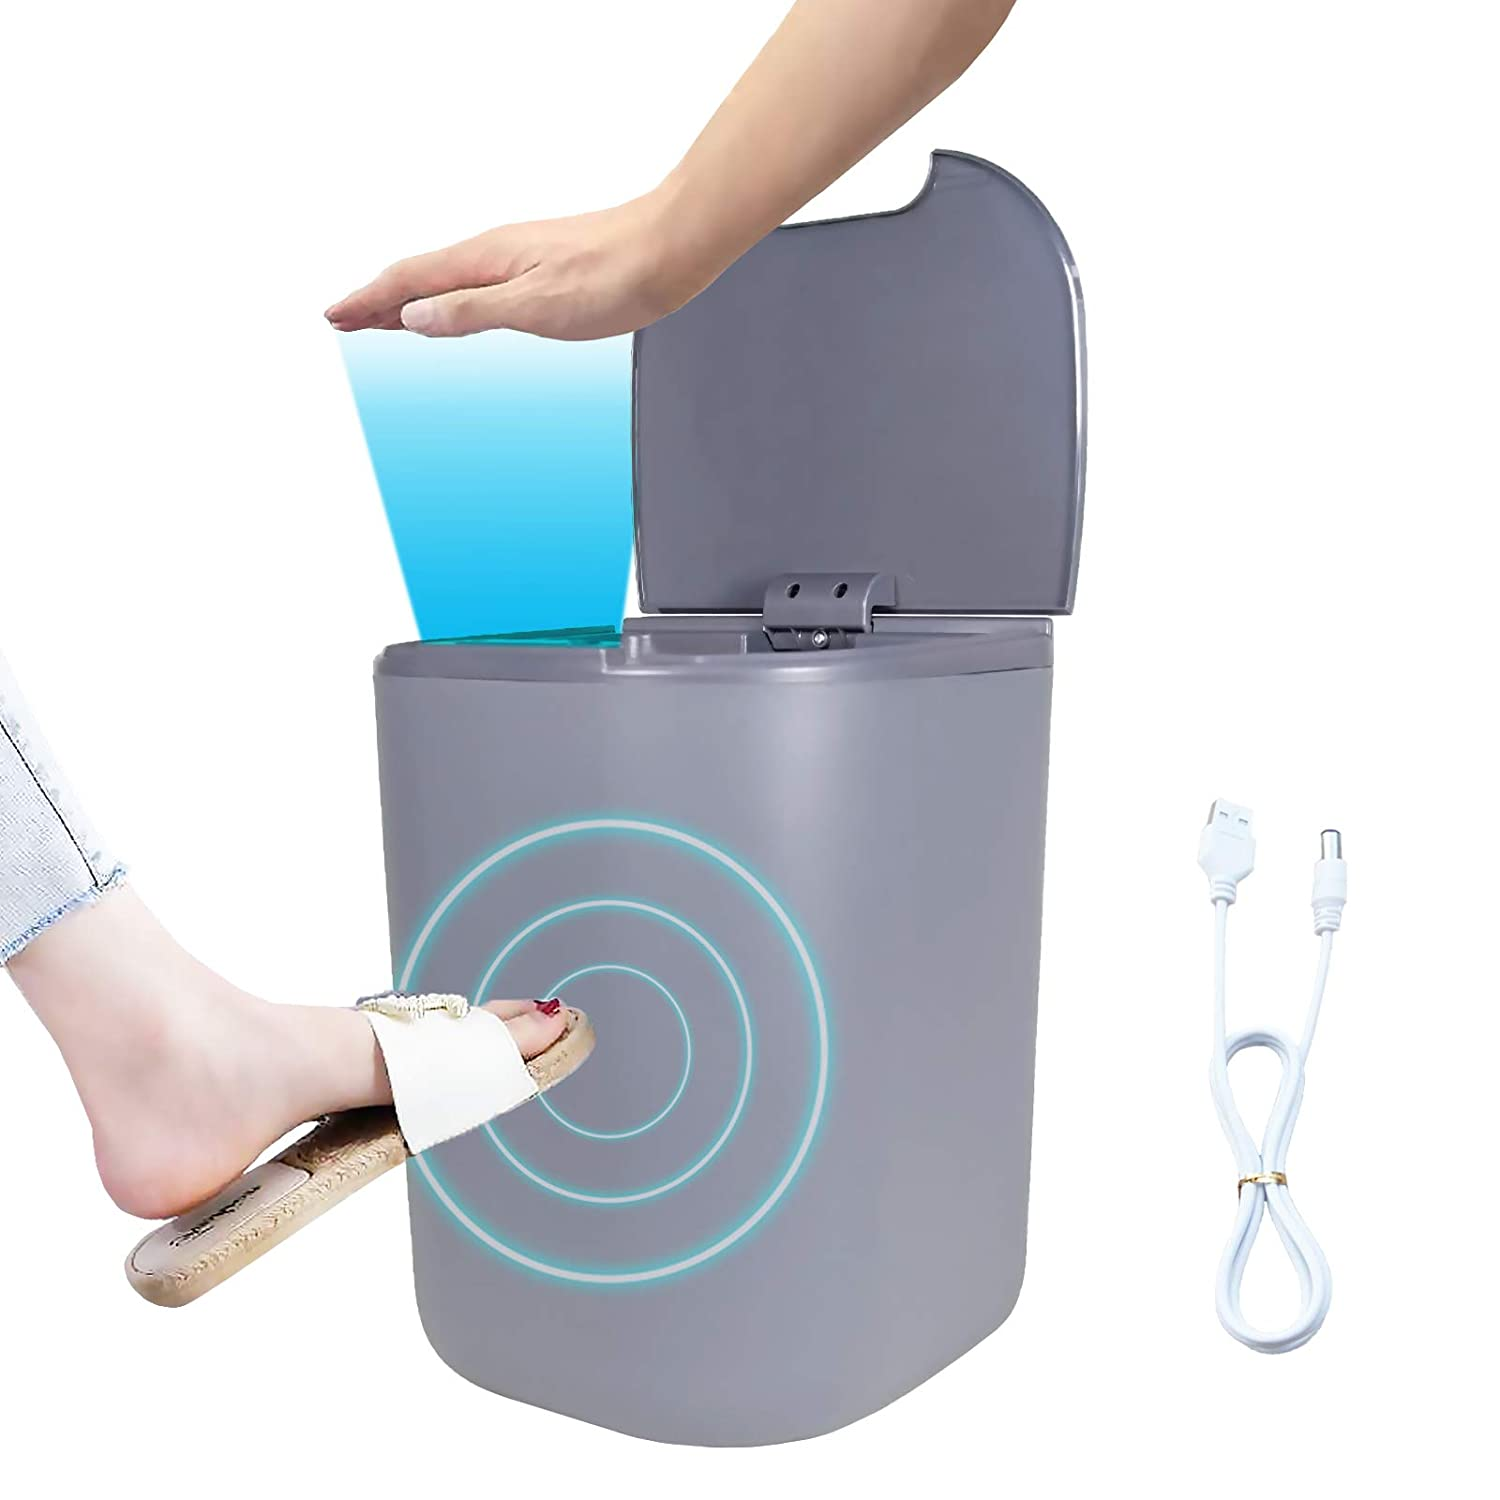 Electric Touchless Garbage Can with Automatic Open Close Lid,Infrared Motion Sensor,USB Rechargeable Smart Small Waste Basket Bin Medium Plastic Trash Container for Kitchen Office Home,4.5 Gallon